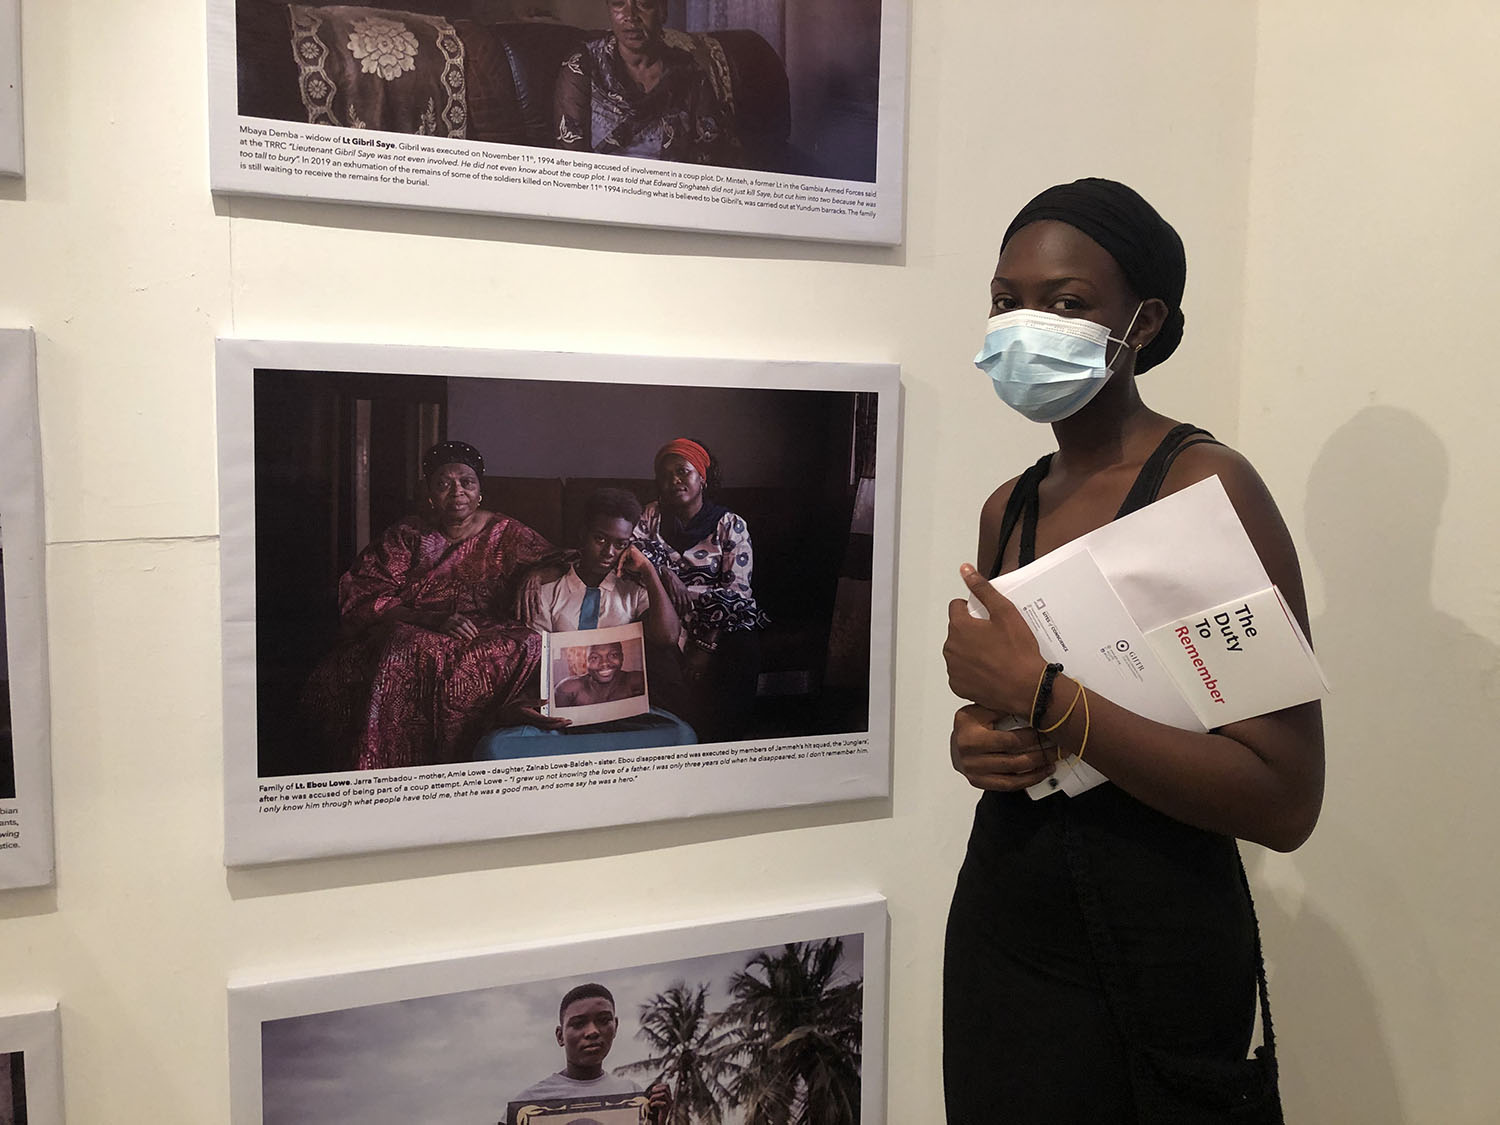 Opening of 'Memory House', The Gambia, West Africa. A young Gambian woman stands in front of a portrait of herself with her family. Images ©Jason Florio & Helen Jones-Florio from 'Gambia - victims, and resisters'